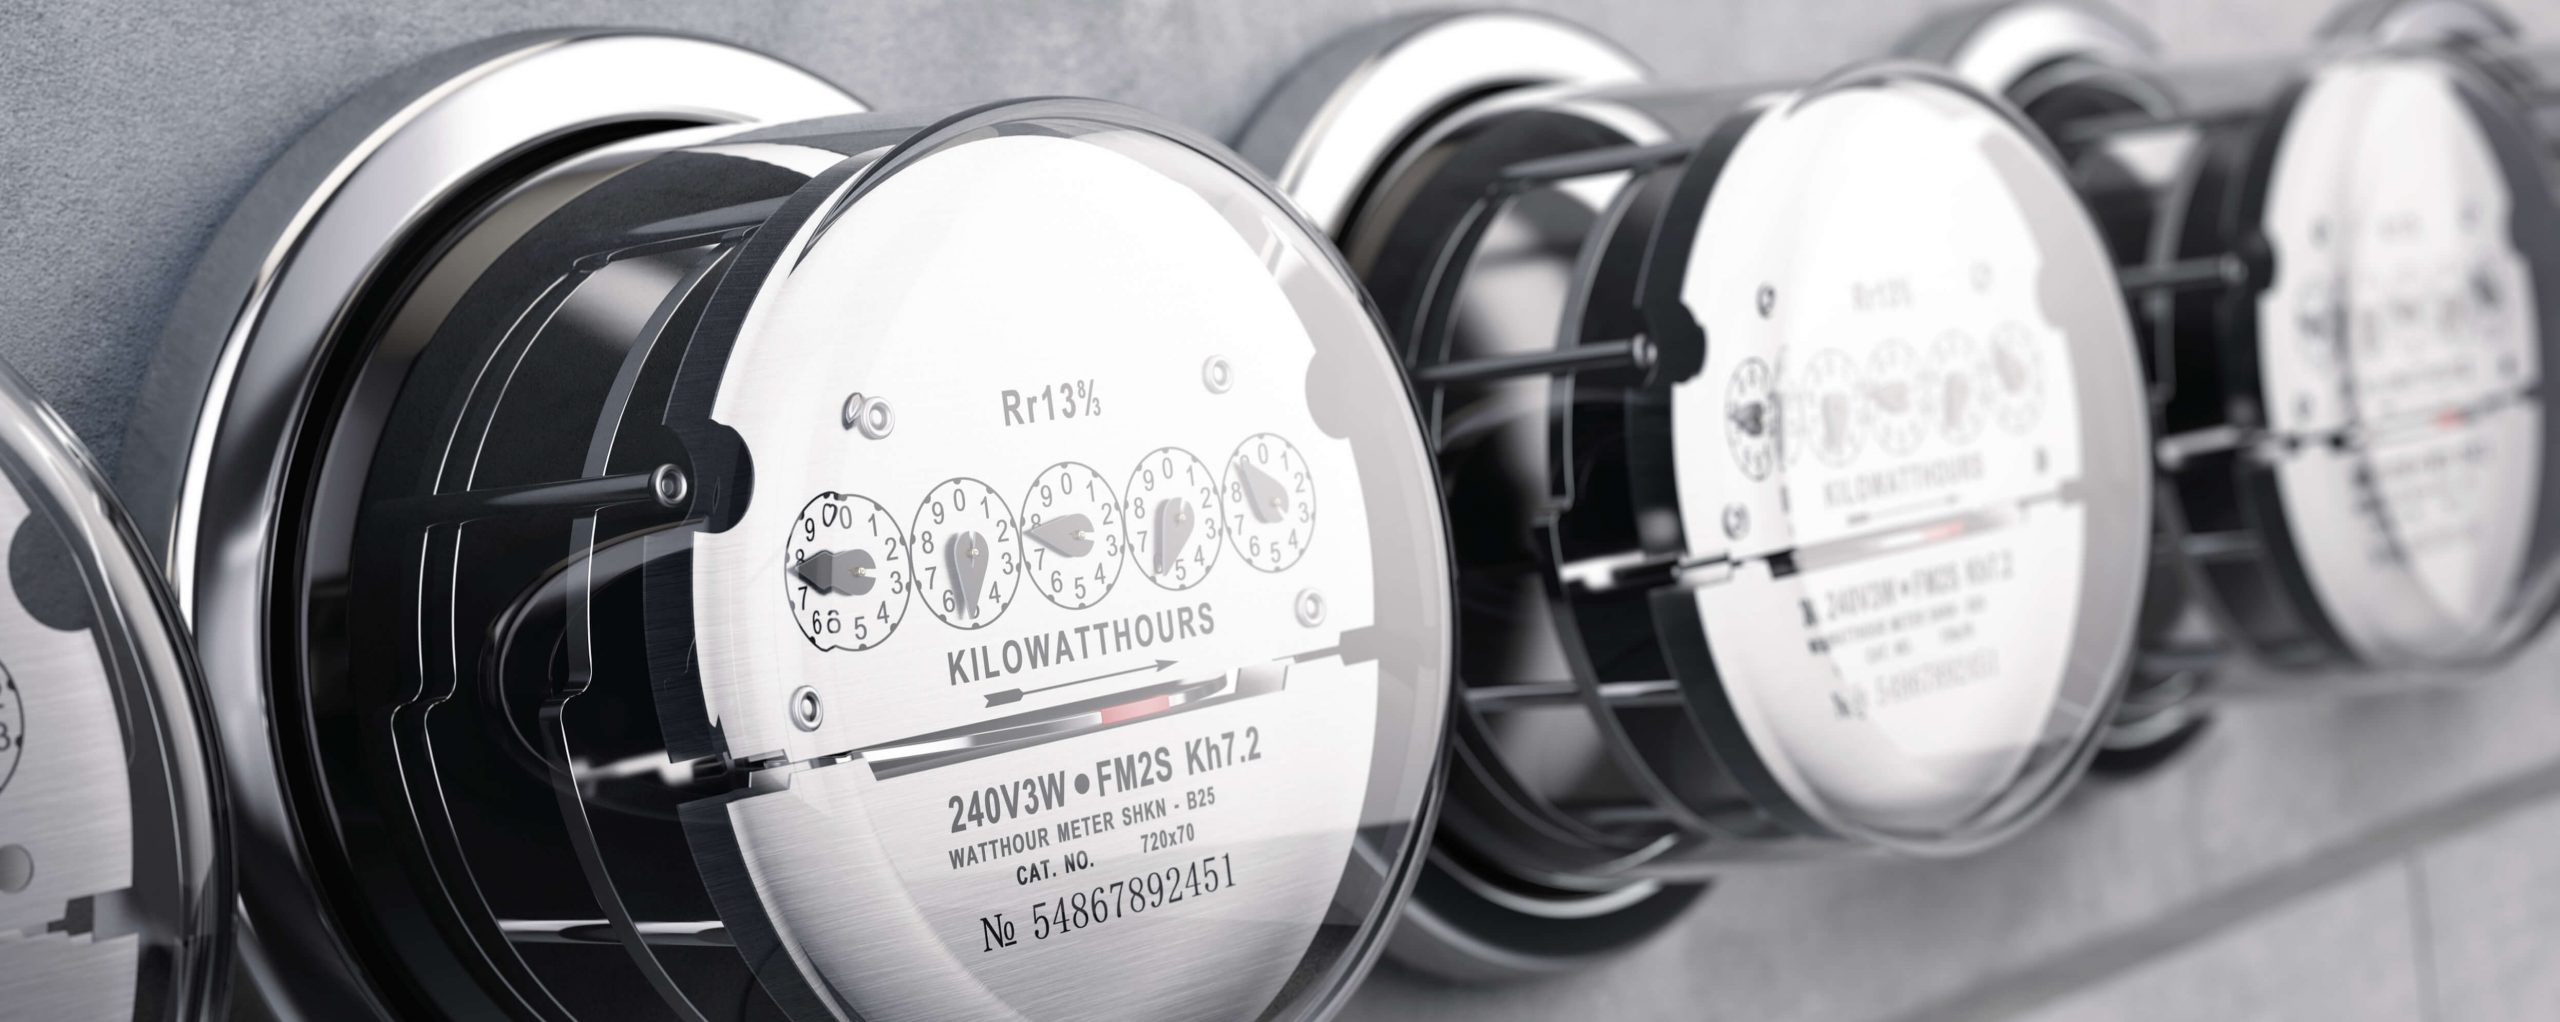 Gas, water, and electric submetering.